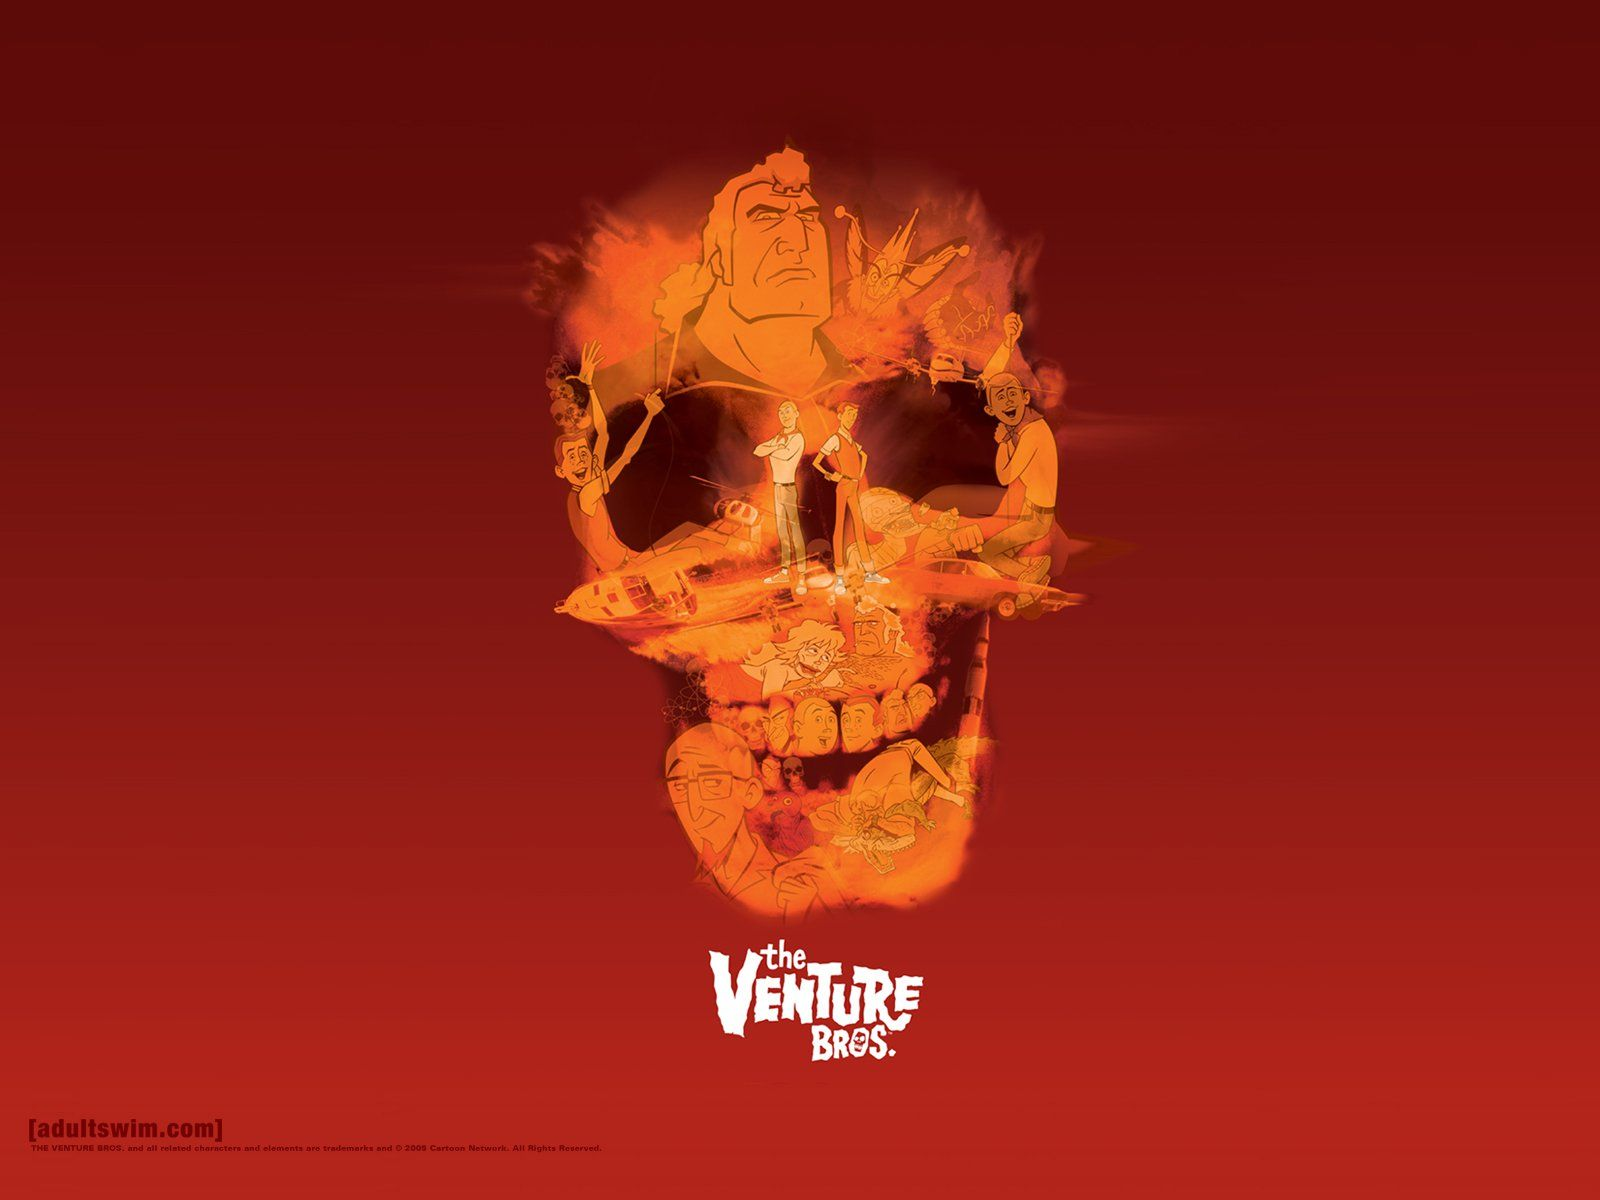 The Venture Bros. Wallpapers